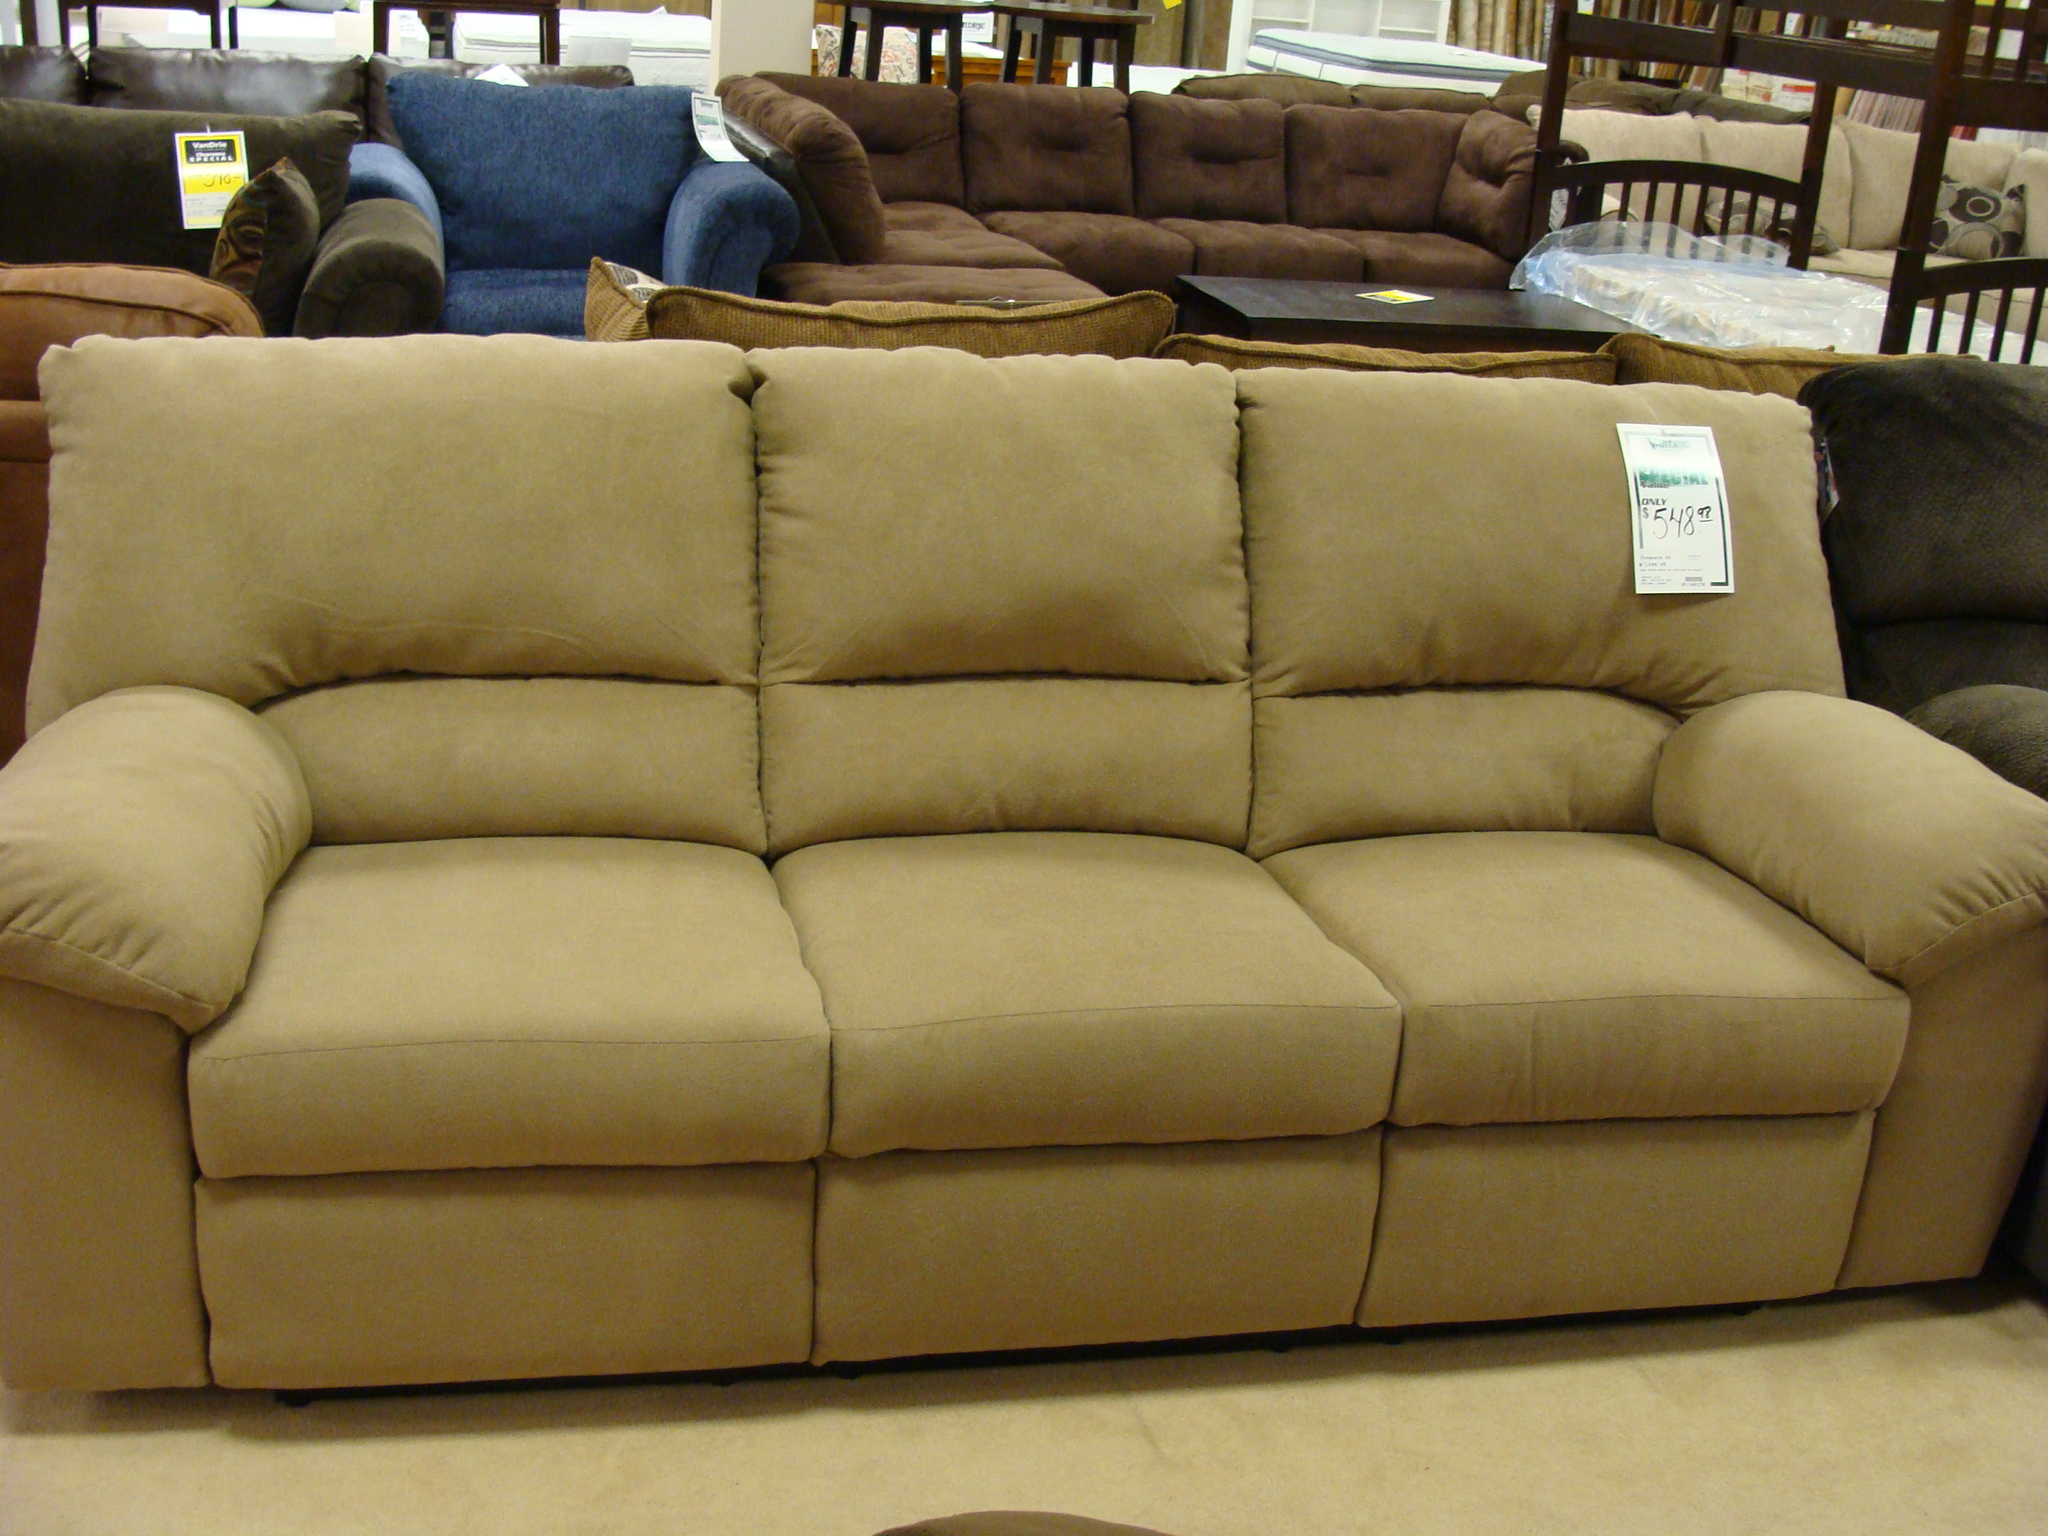 reclining sofa on clearance recliner sale sydney cadillac michigan furniture store